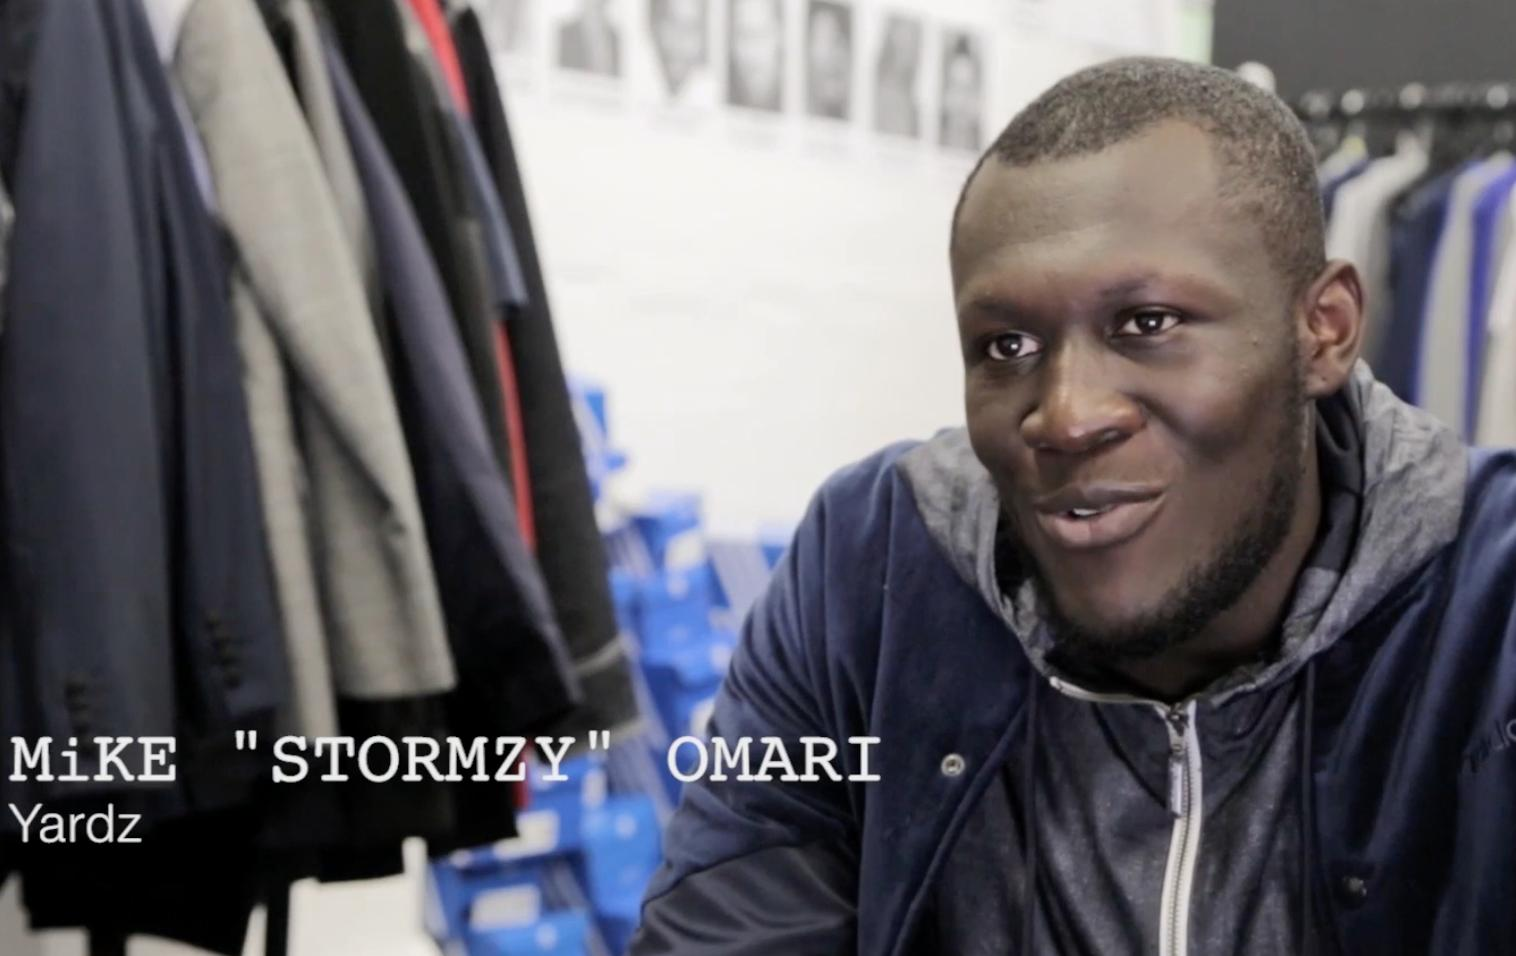 Stormzy in BrOTHERHOOD